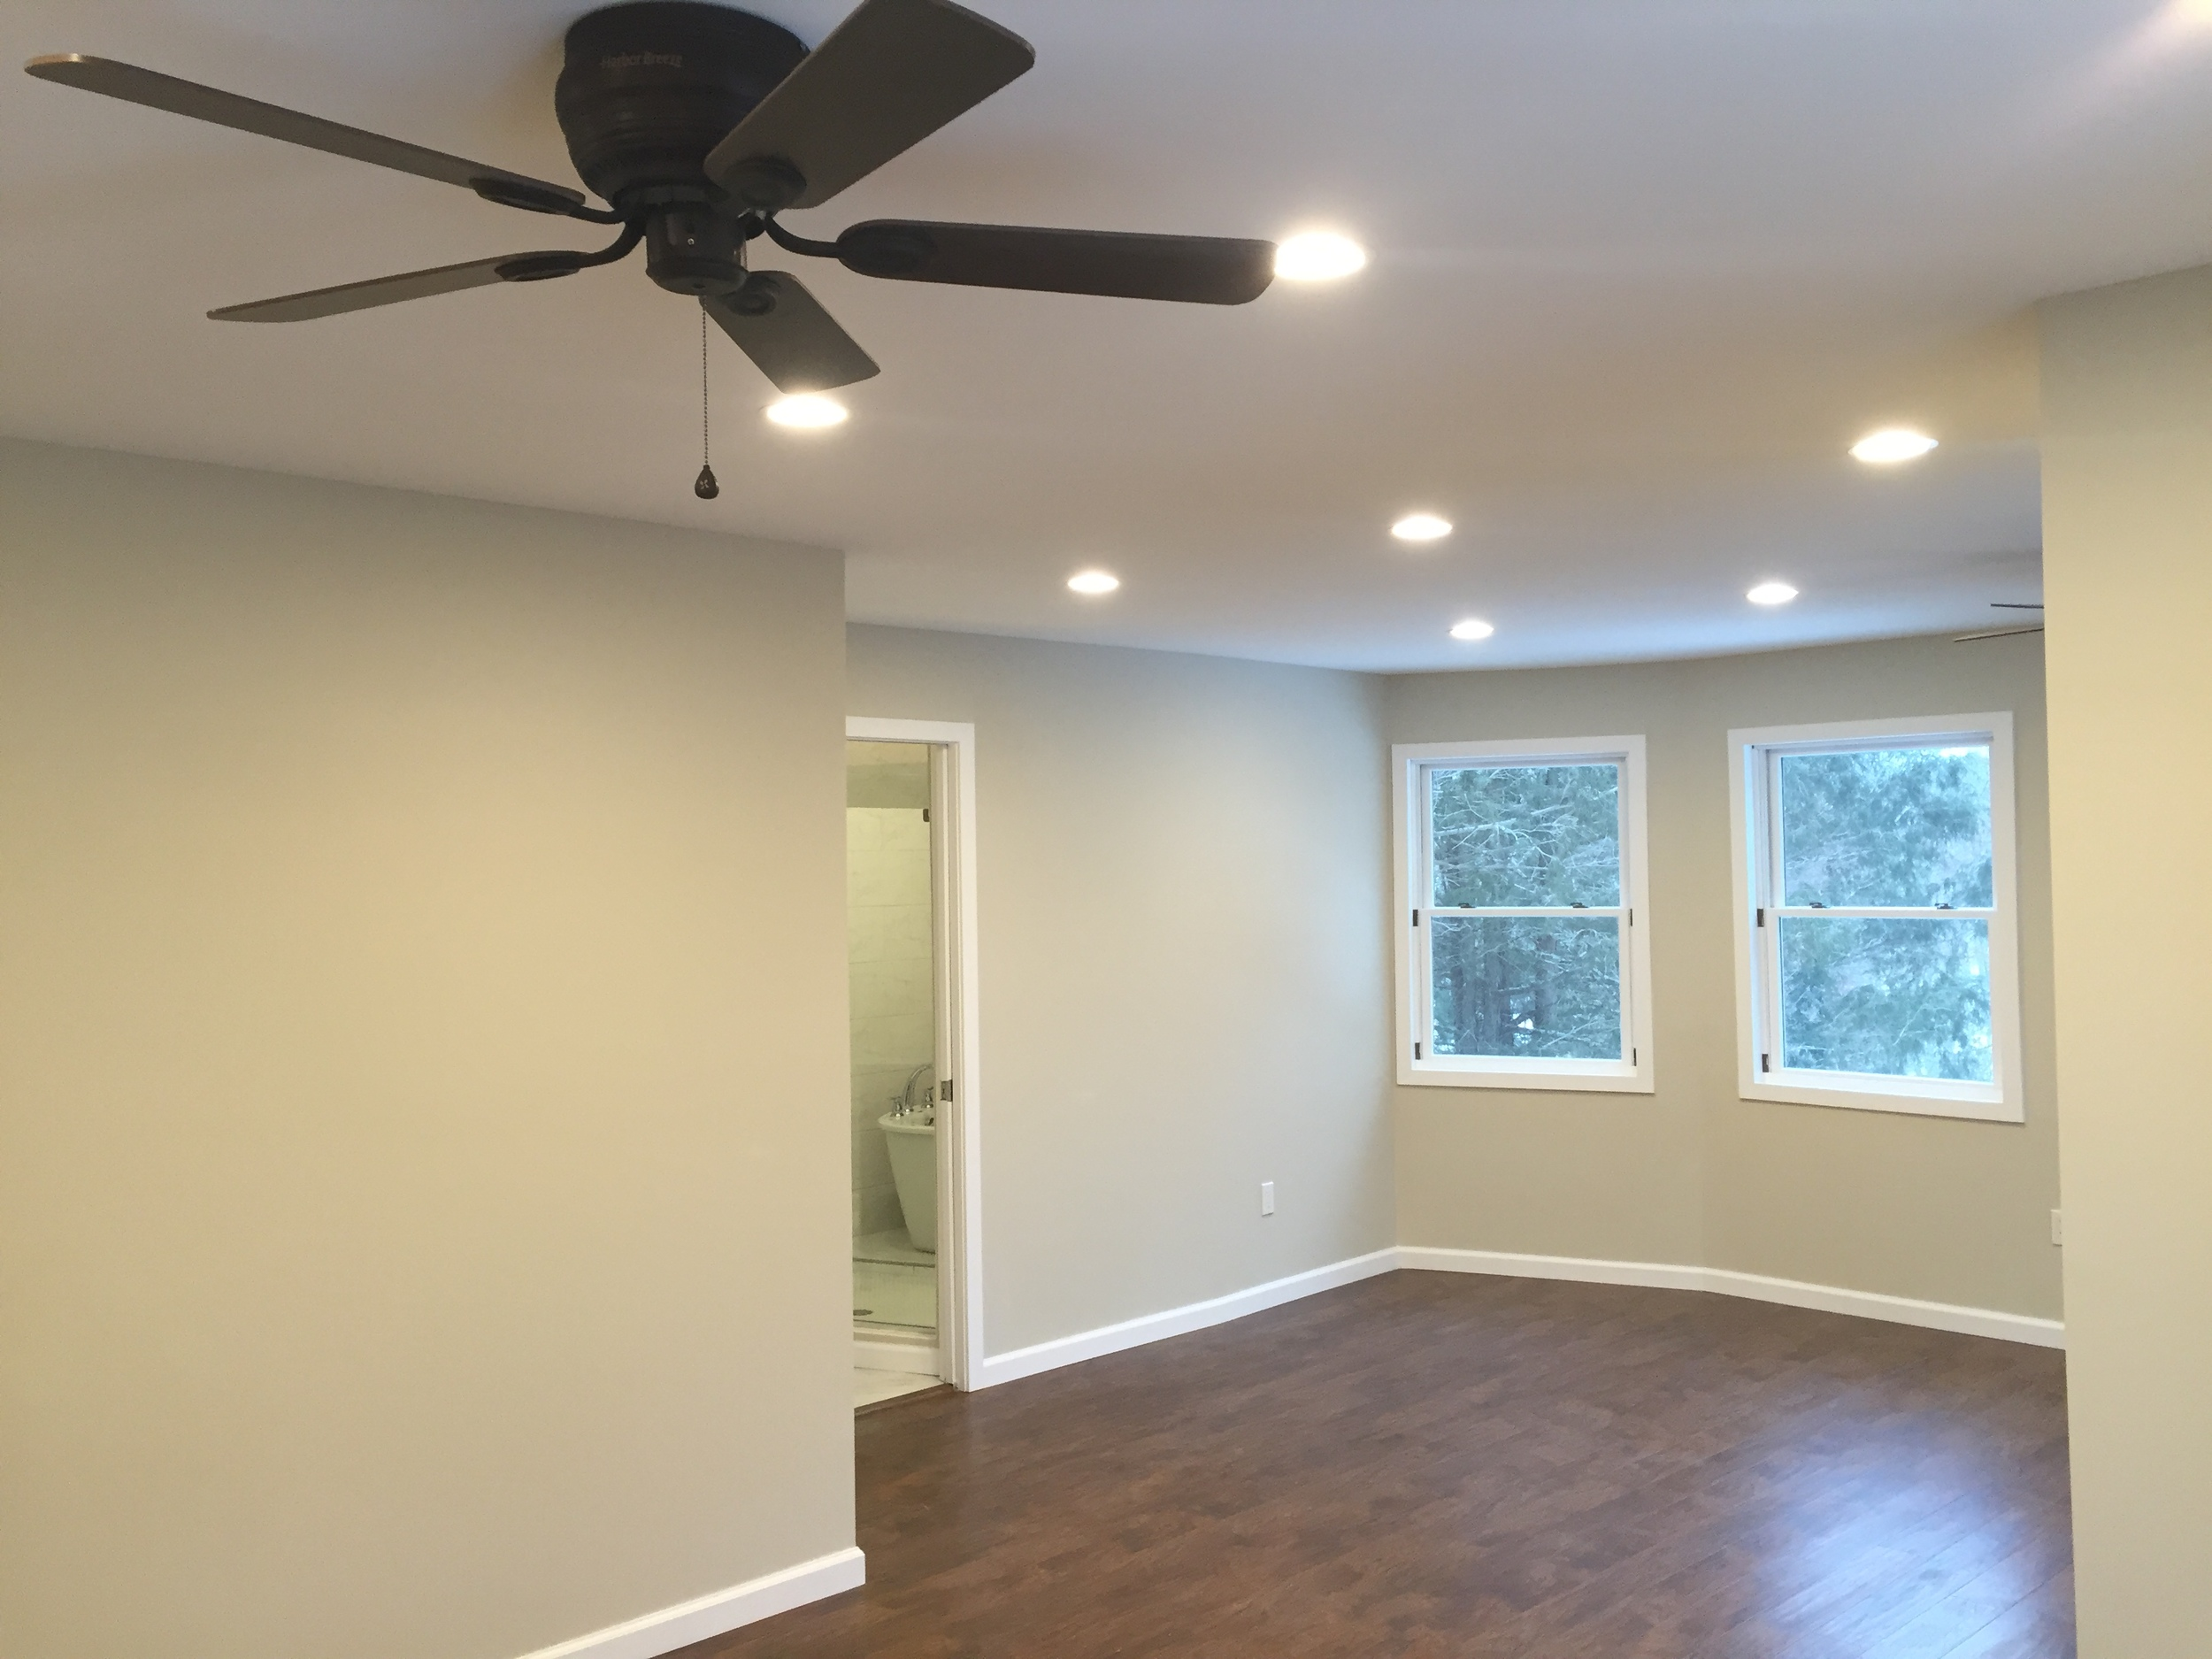 Home Attic Addition and Full Renovation in Waterford CT | Shaw Remodeling